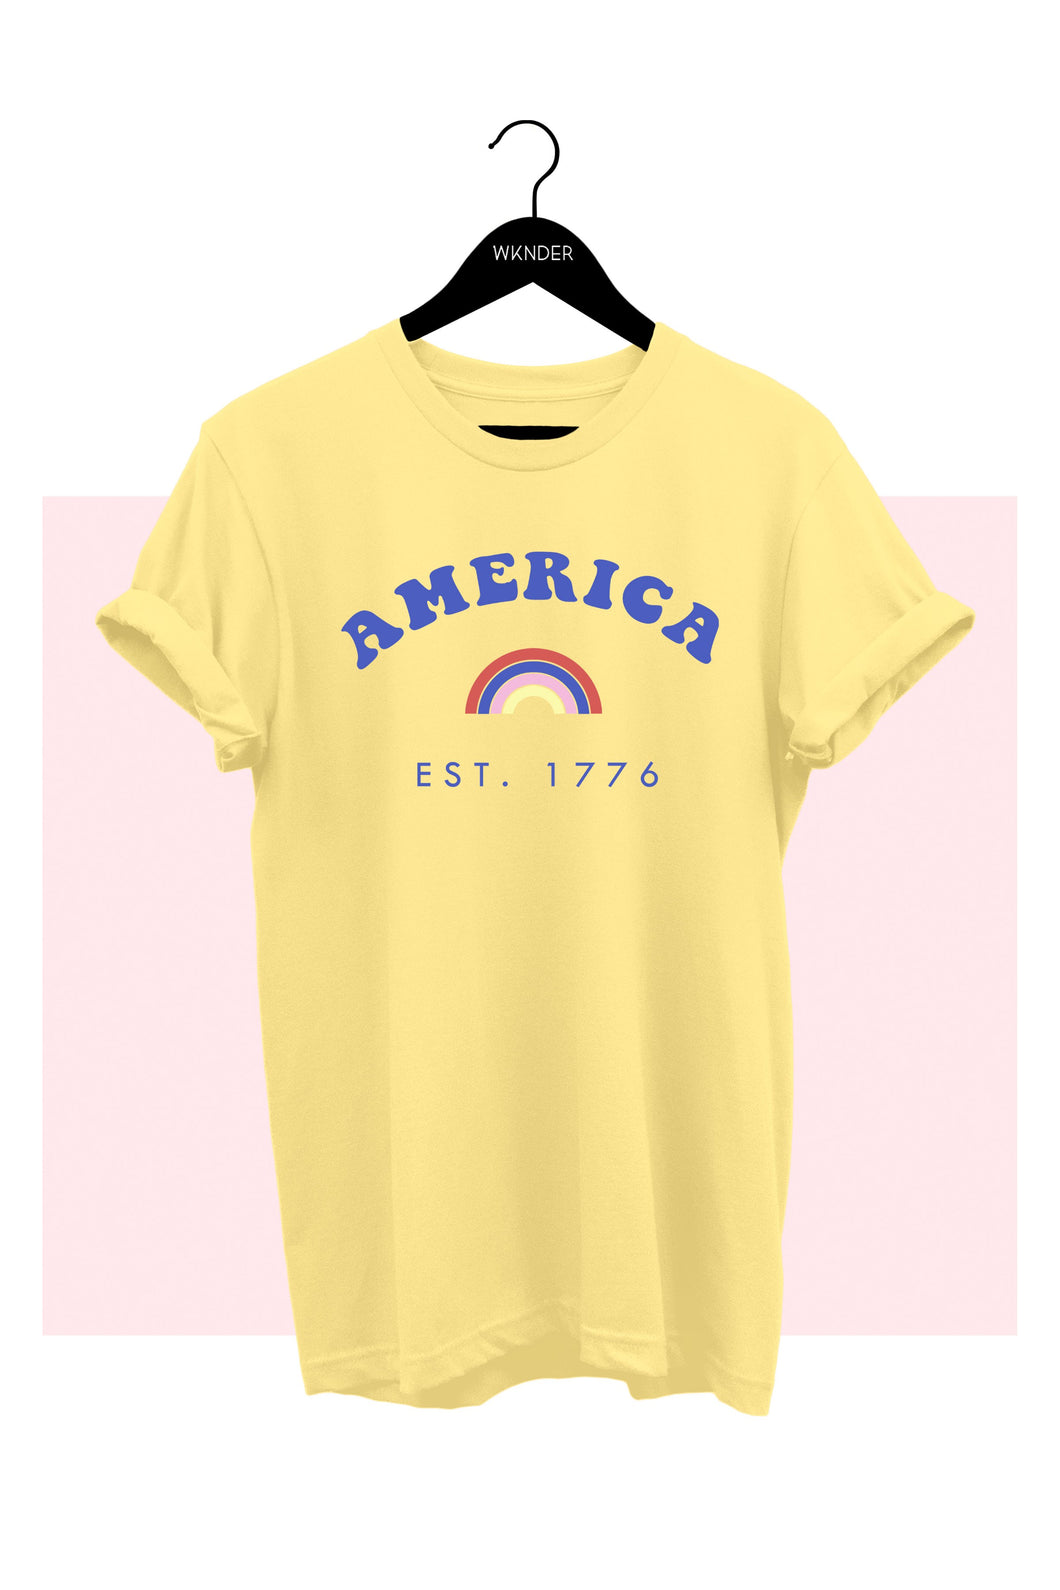 America Est. 1776 Yellow Graphic Tee